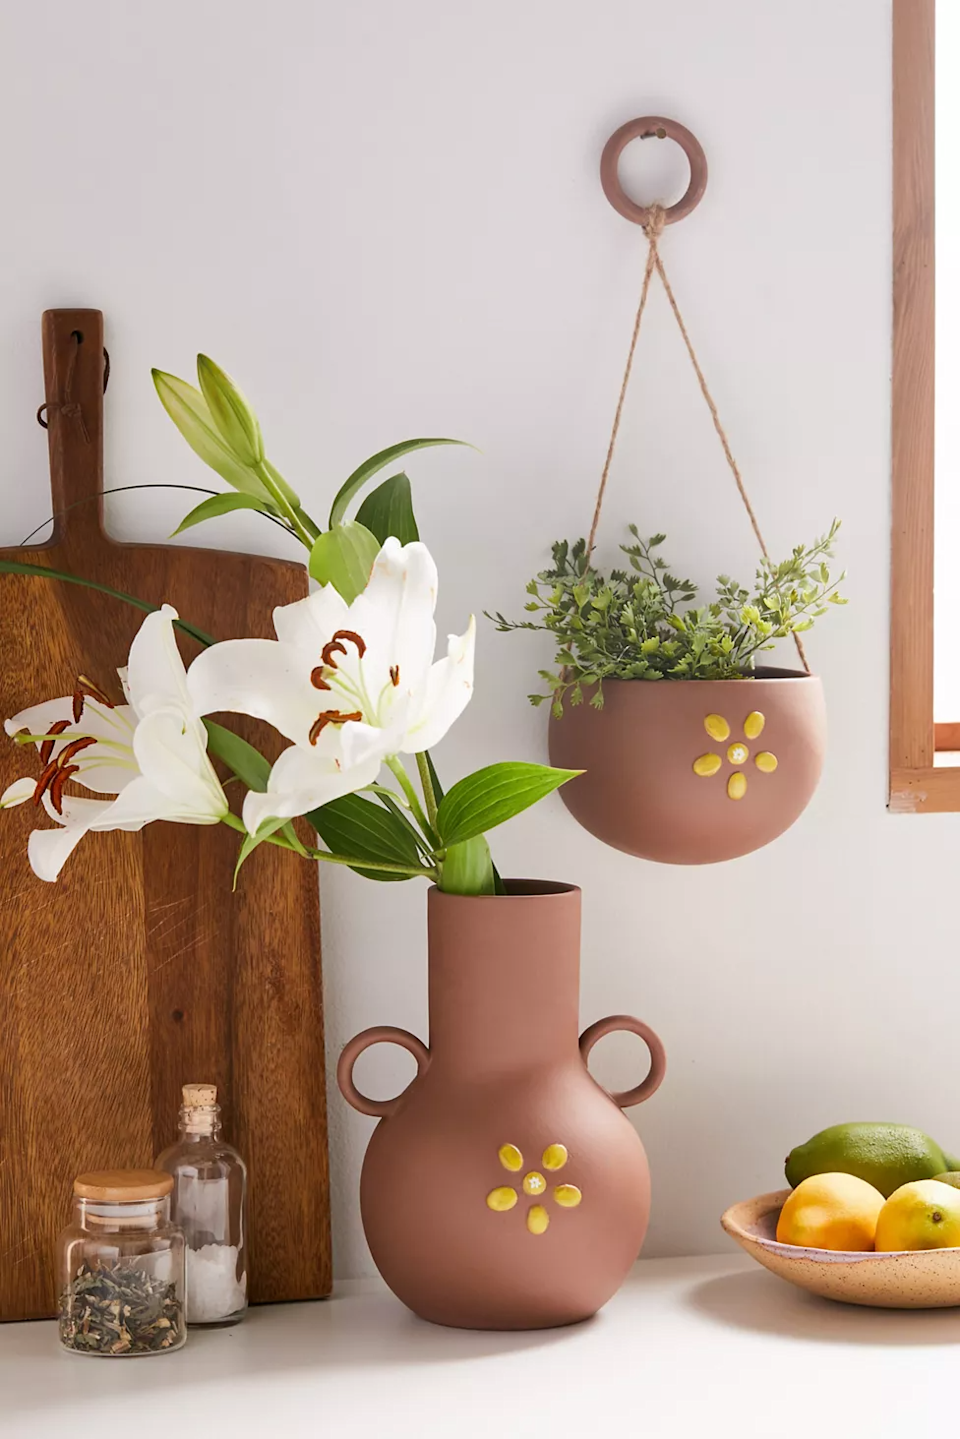 """<h2>Urban Outfitters Malia Hanging Planter</h2><br>One way to cheer up your WFH space? Re-pot your favorite green friend inside a happy daisy hanging planter.<br><br><strong>Urban Outfitters</strong> Malia Hanging Planter, $, available at <a href=""""https://go.skimresources.com/?id=30283X879131&url=https%3A%2F%2Fwww.urbanoutfitters.com%2Fshop%2Fmalia-hanging-planter"""" rel=""""nofollow noopener"""" target=""""_blank"""" data-ylk=""""slk:Urban Outfitters"""" class=""""link rapid-noclick-resp"""">Urban Outfitters</a>"""